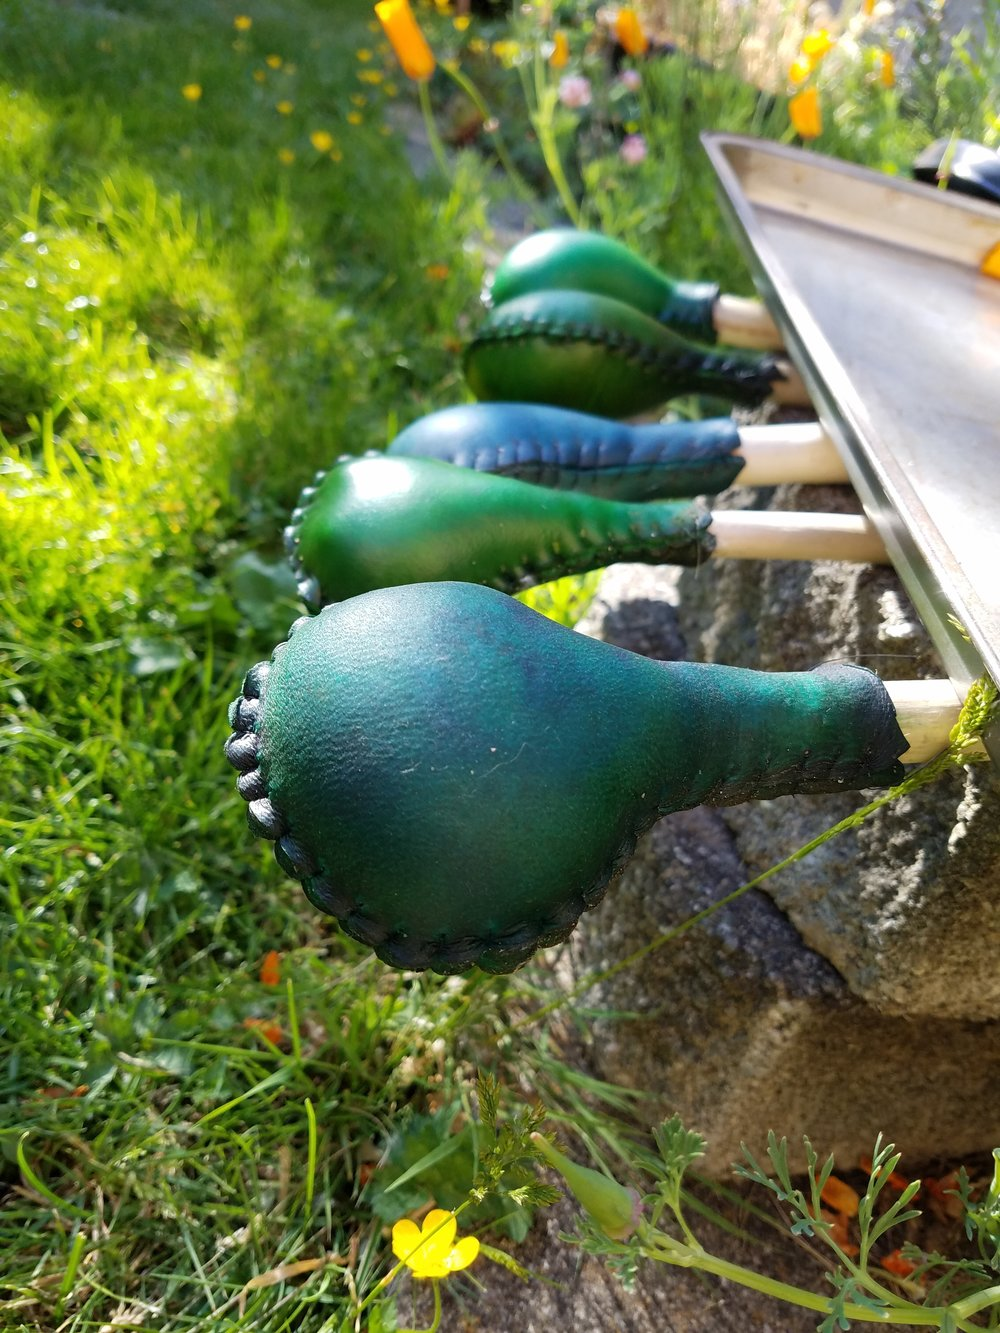 Emerald Green Rattles Drying in the Sun